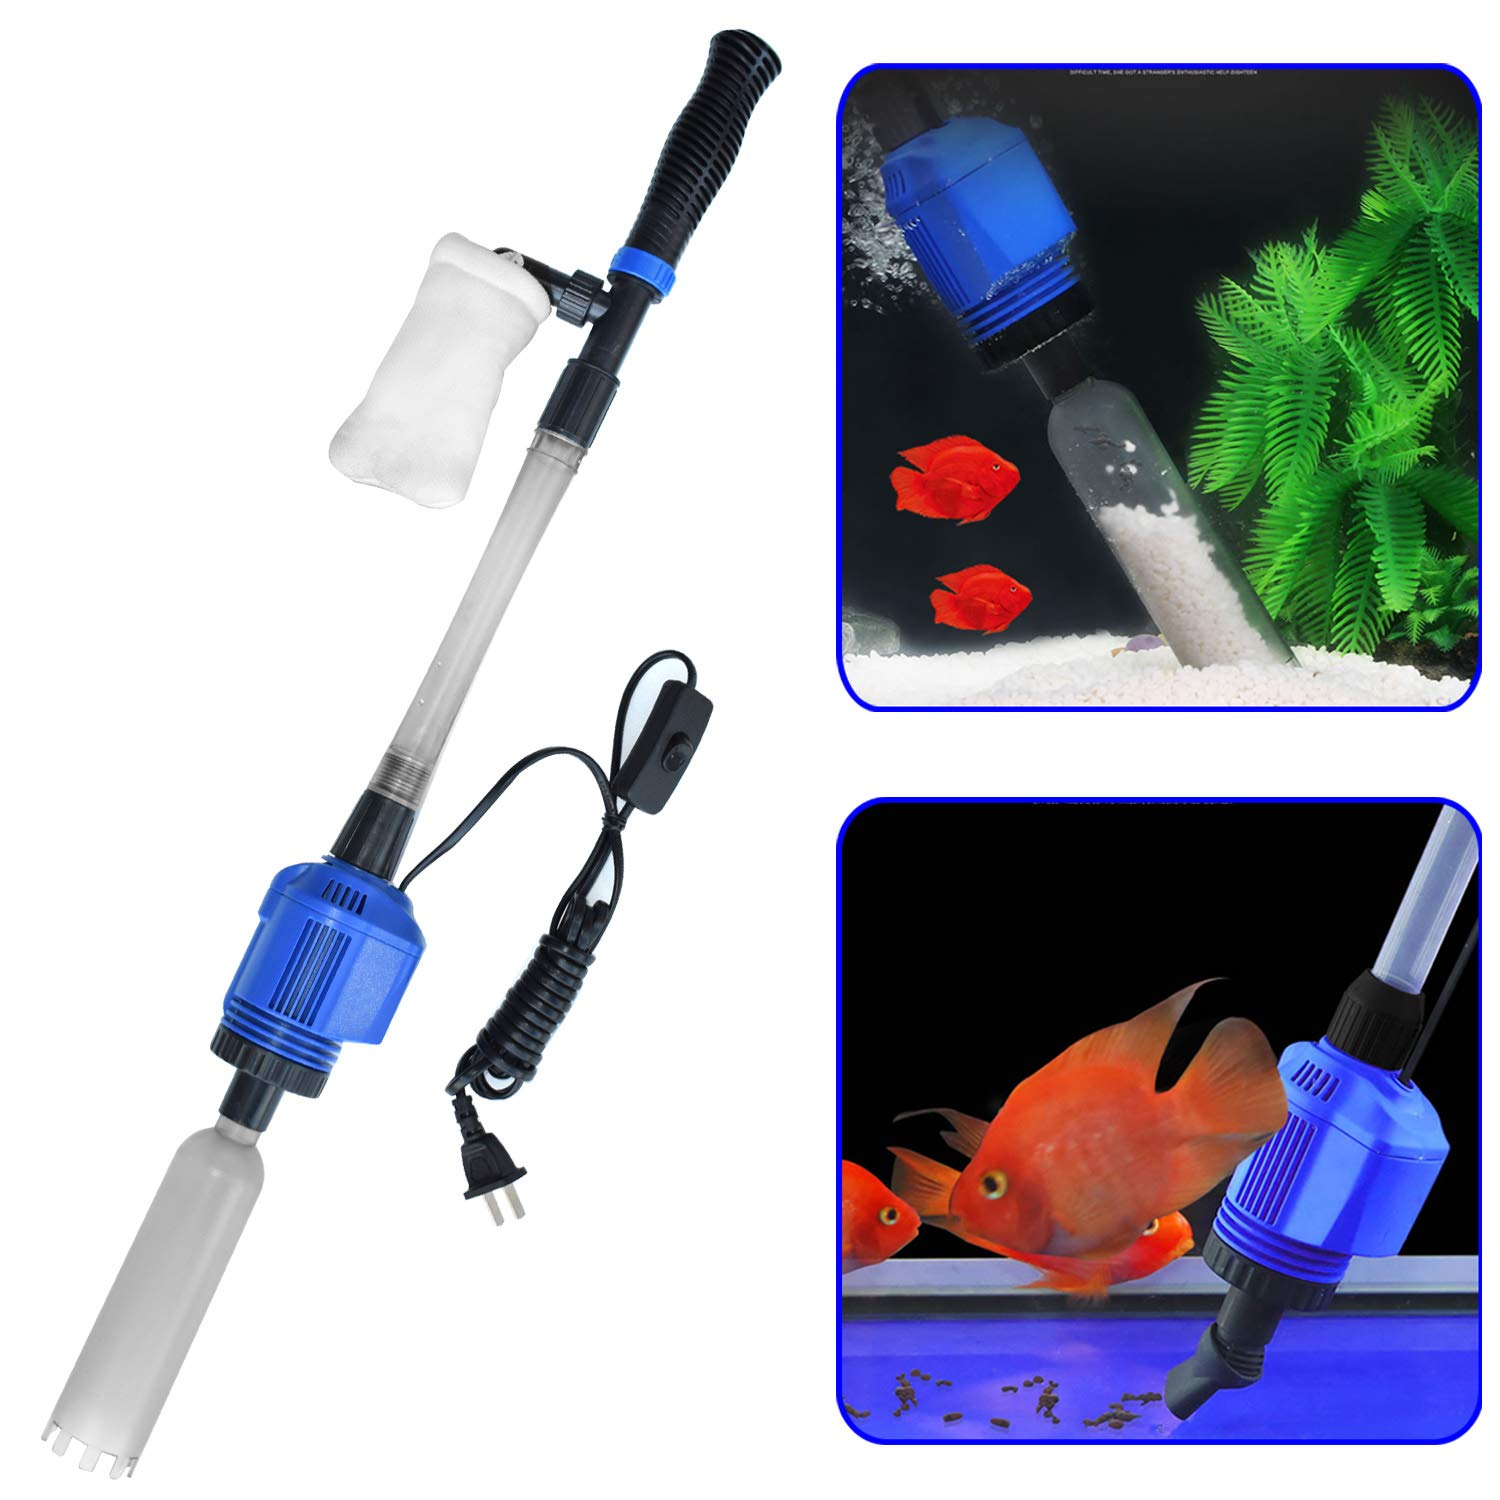 YADICO Auto Electric Aquarium Gravel Cleaner, 3 in 1 Automatic Sludge Extractor for Fish Plant Tanks